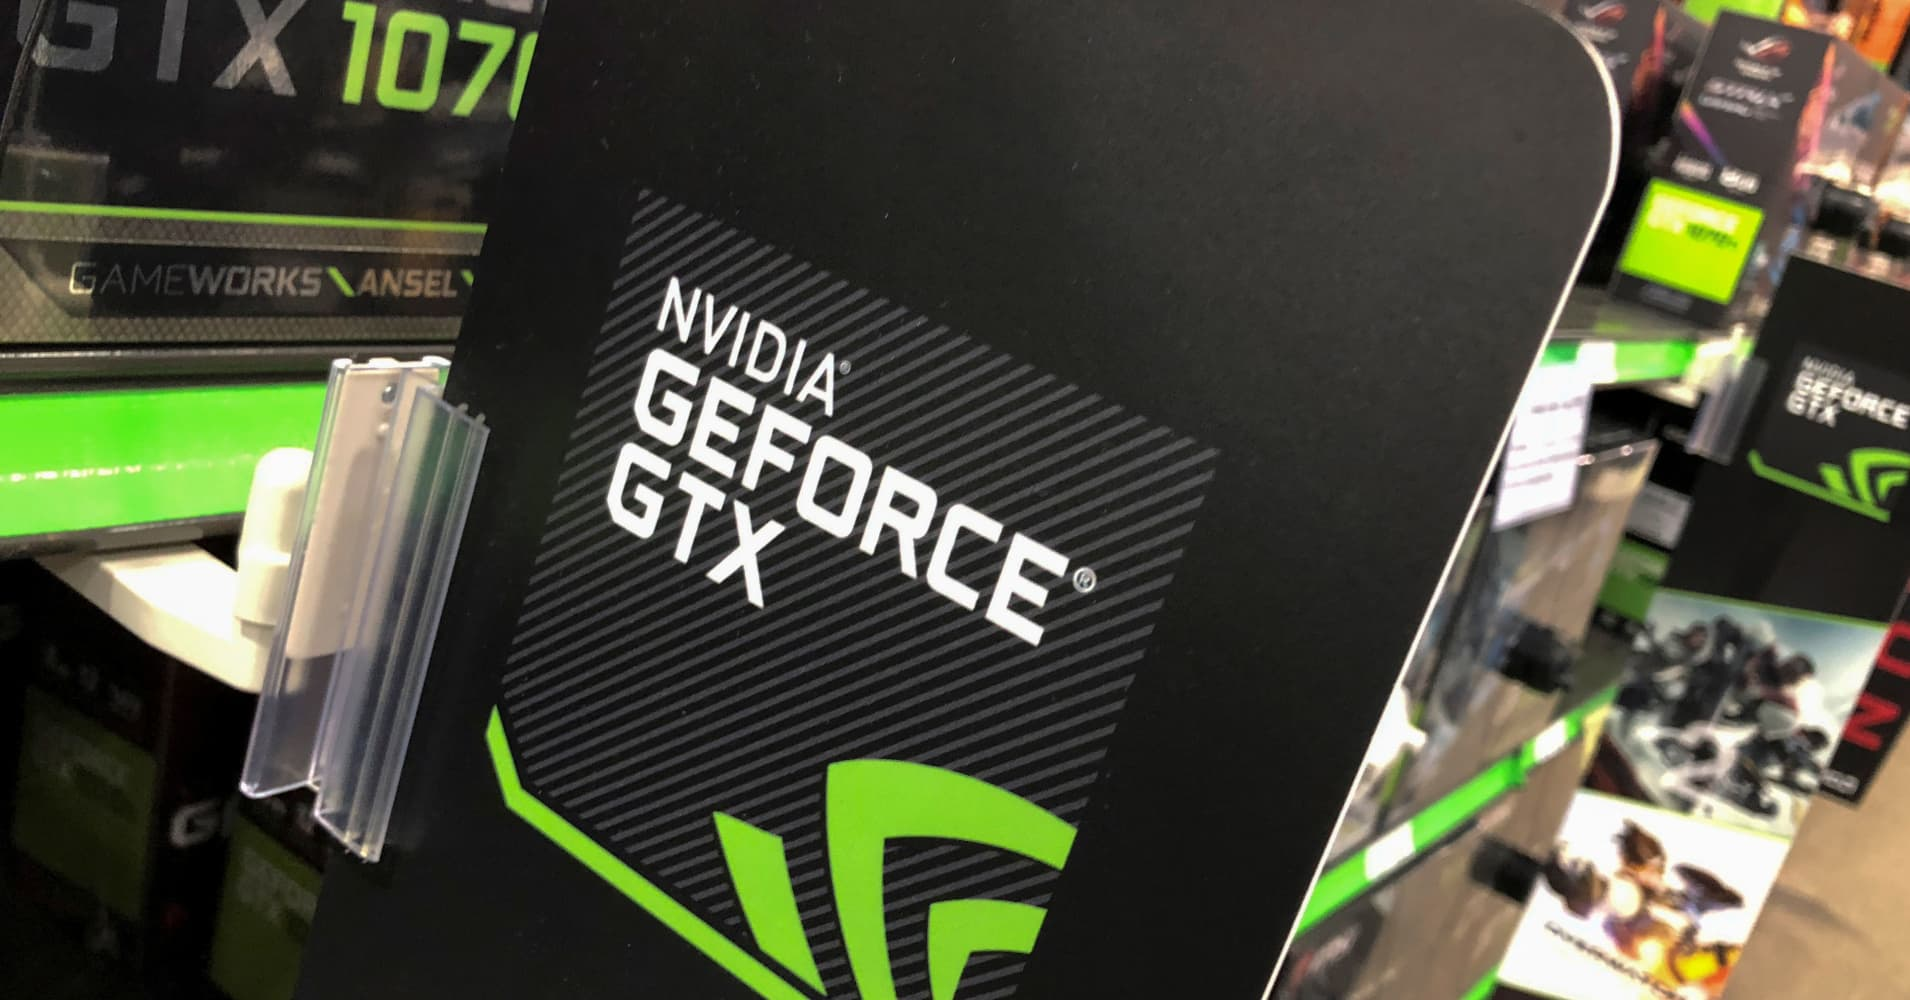 Nvidia is tanking on earnings, but one trader is buying the dip